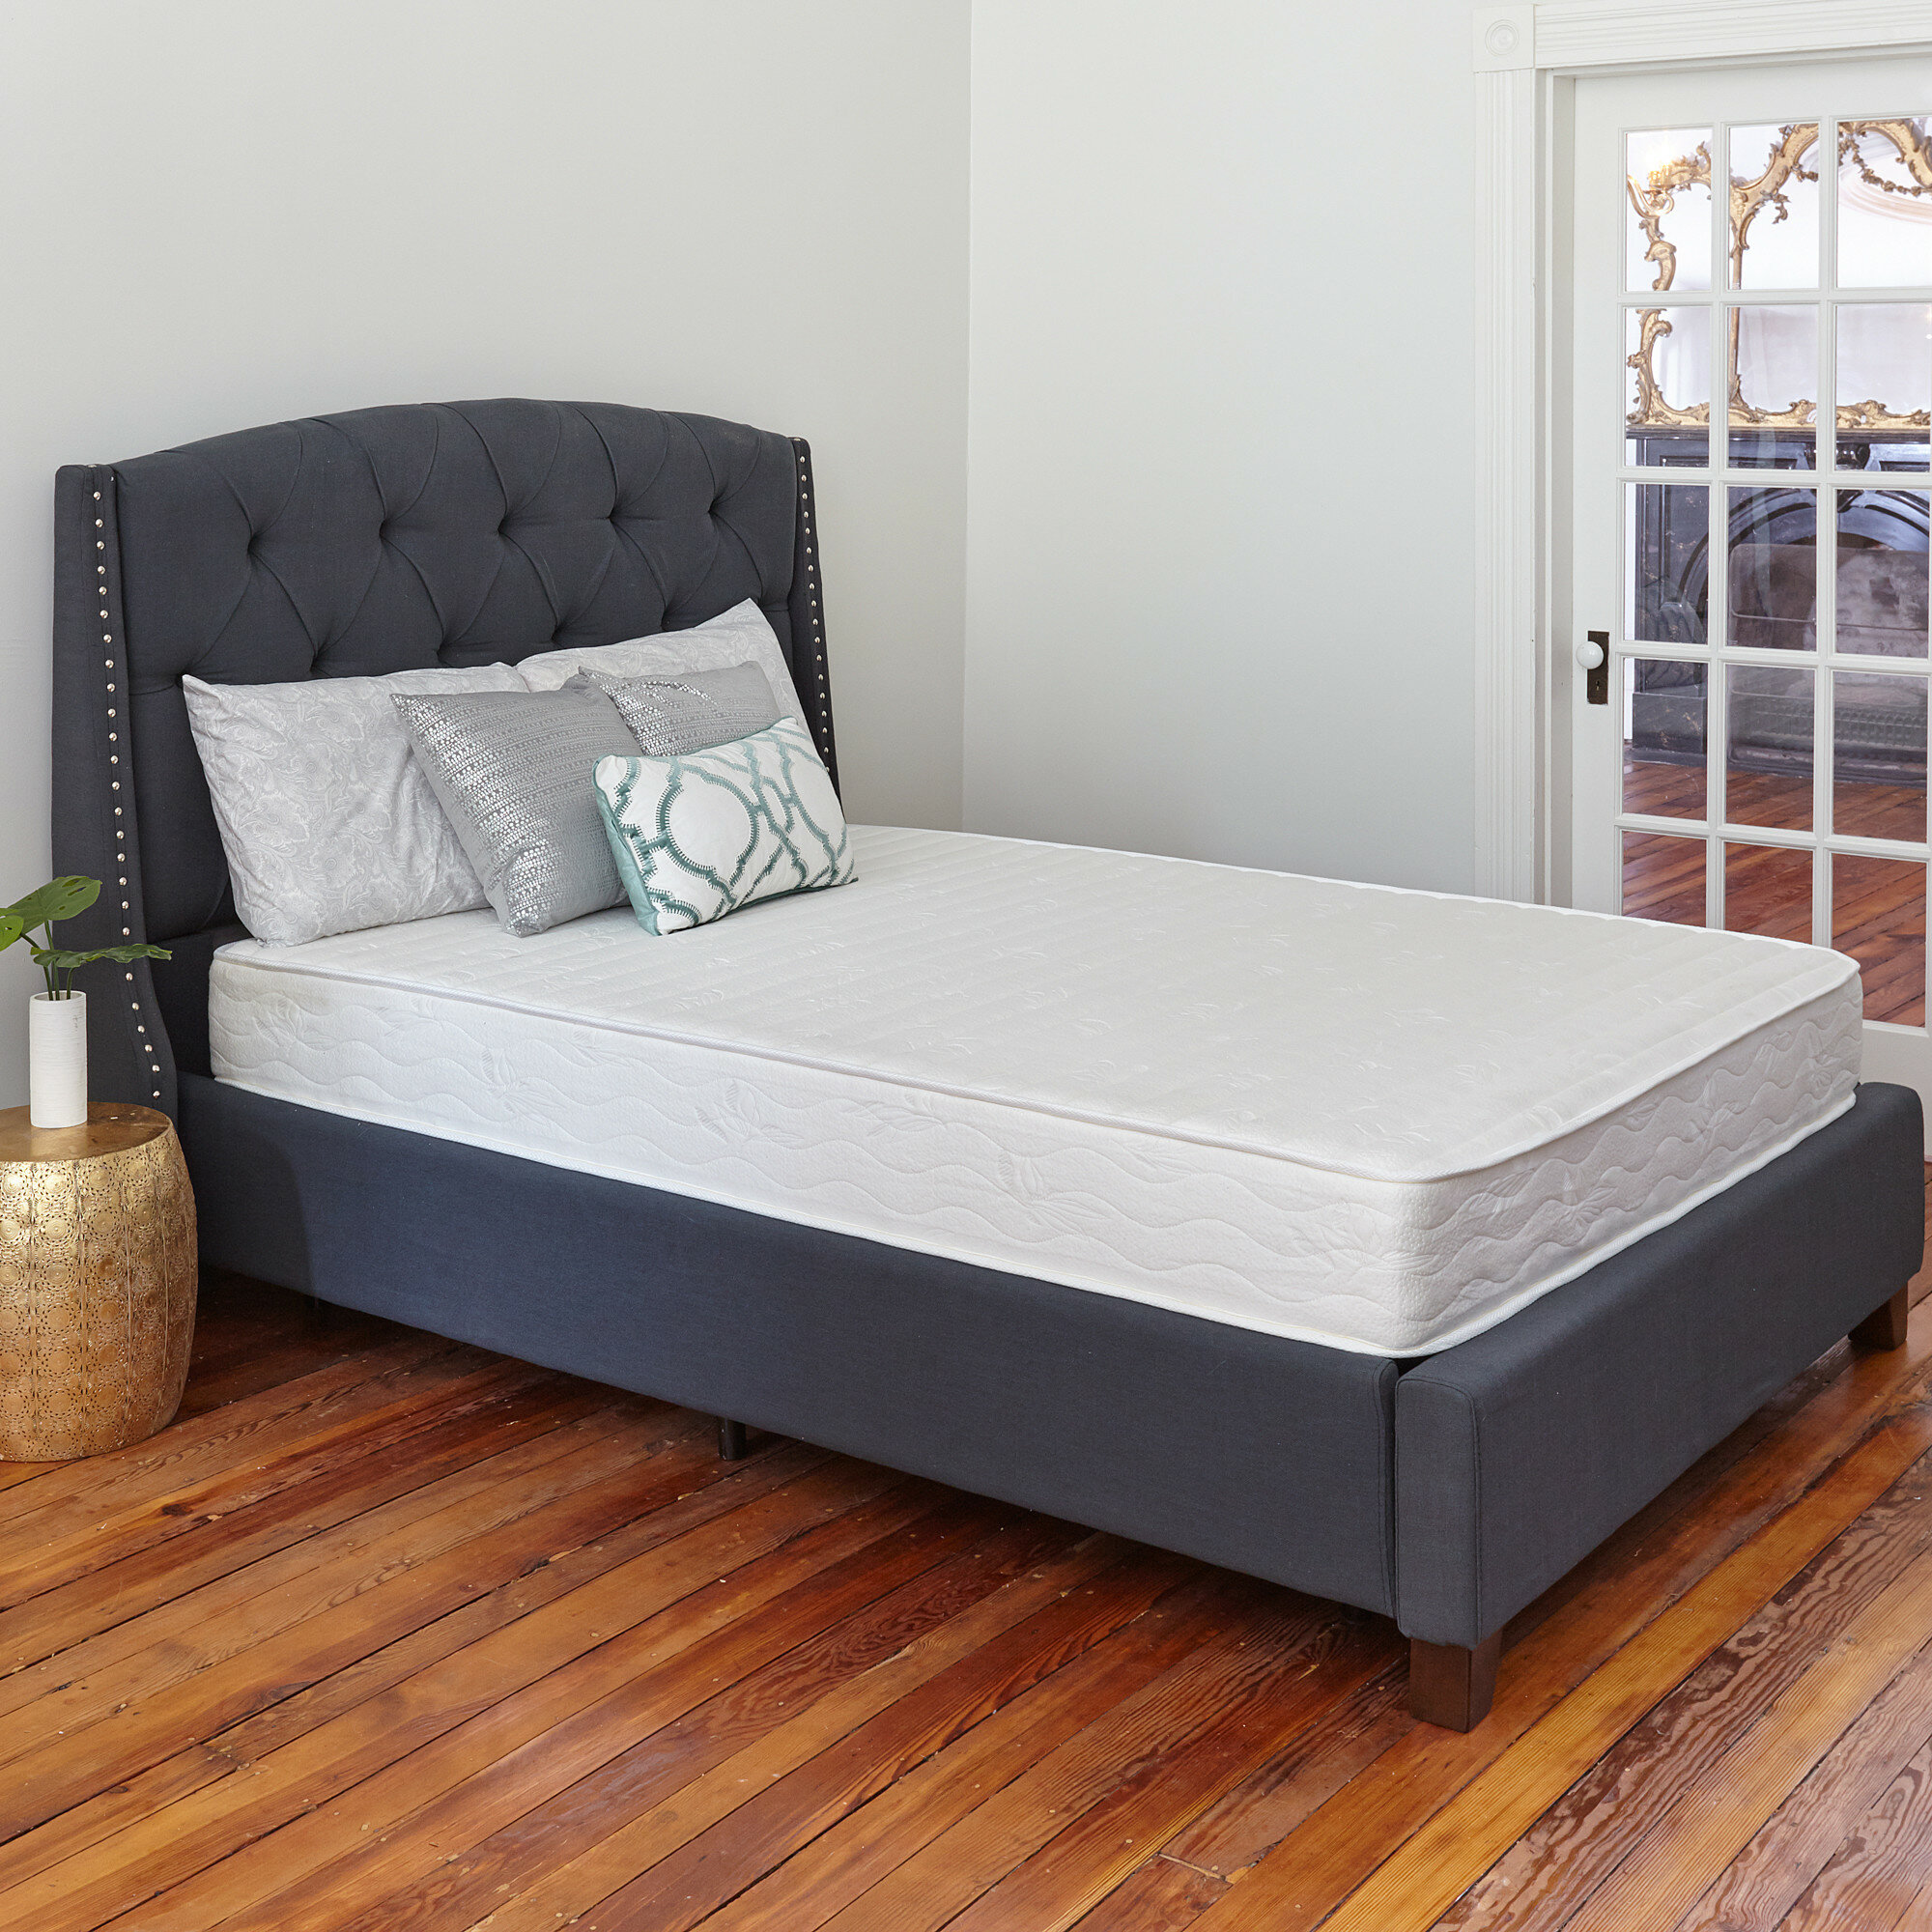 alleviating what to one make way mattress how pain long buy and can stiffness field alexander hybrid experts symptoms right this nest go say muscles in specializing you that is other a back the